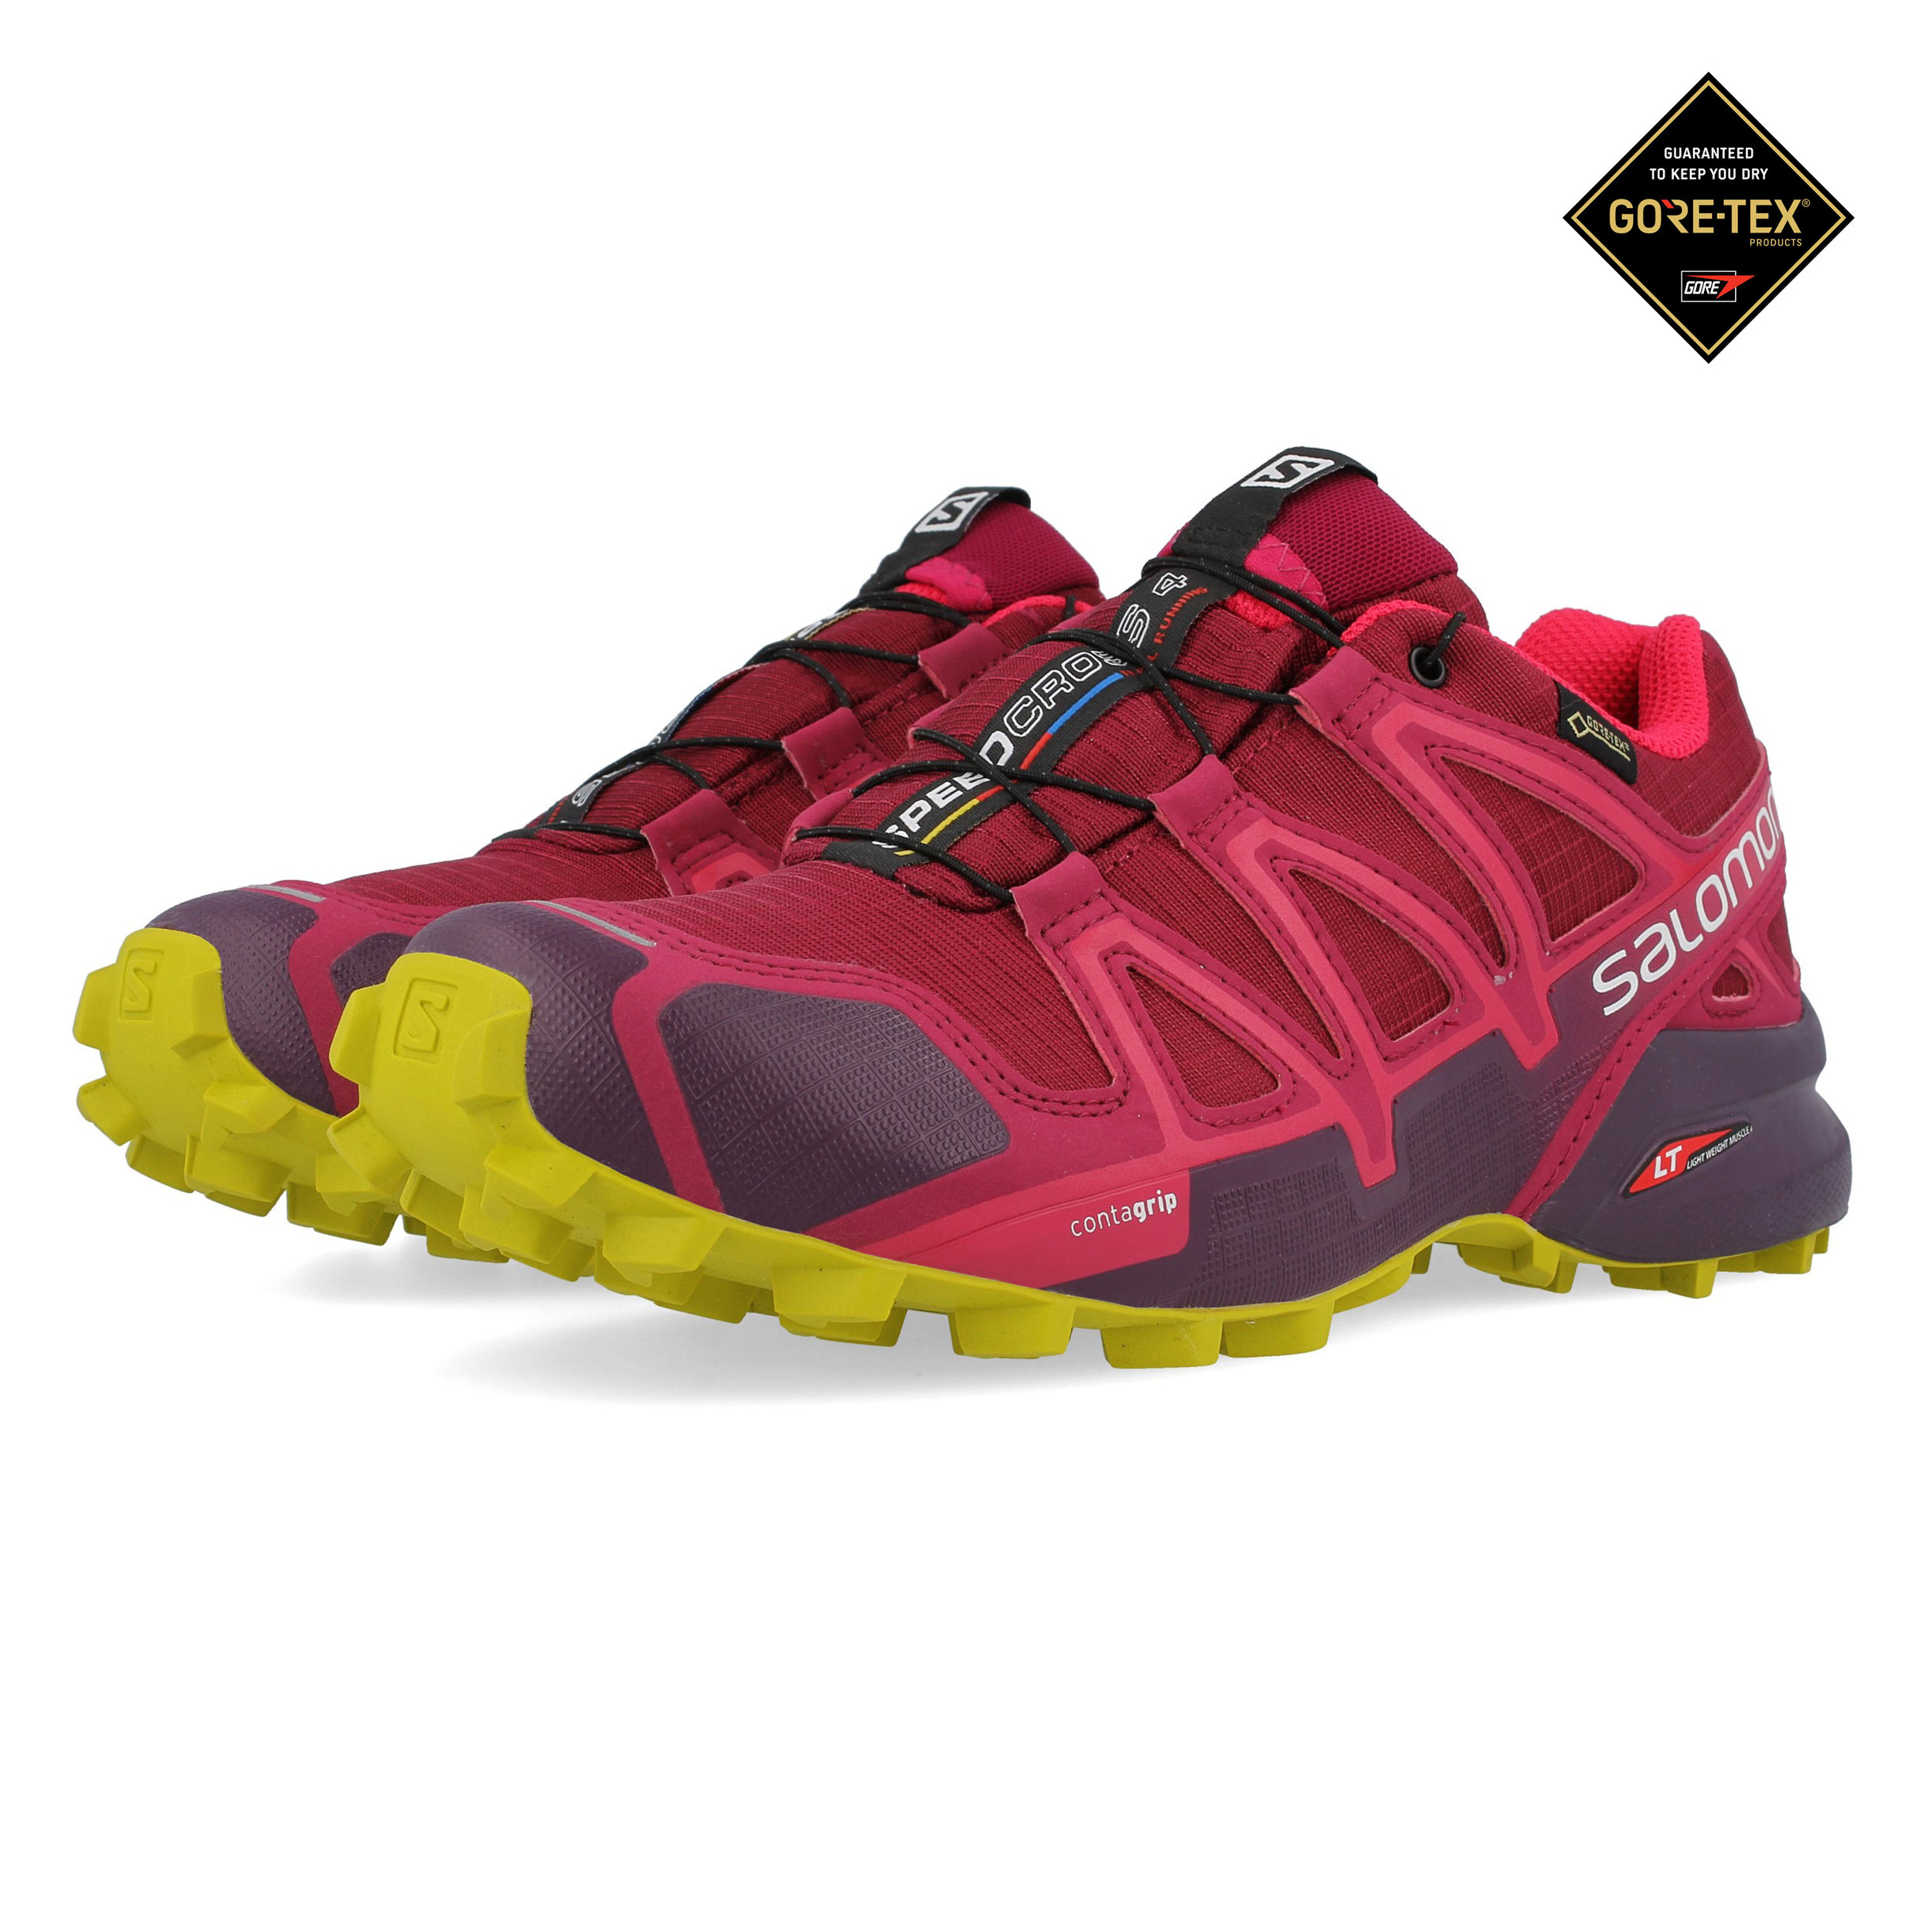 5aecfd8bab061 Details about Salomon Womens Speedcross 4 GORE-TEX Trail Running Shoes  Trainers Sneakers